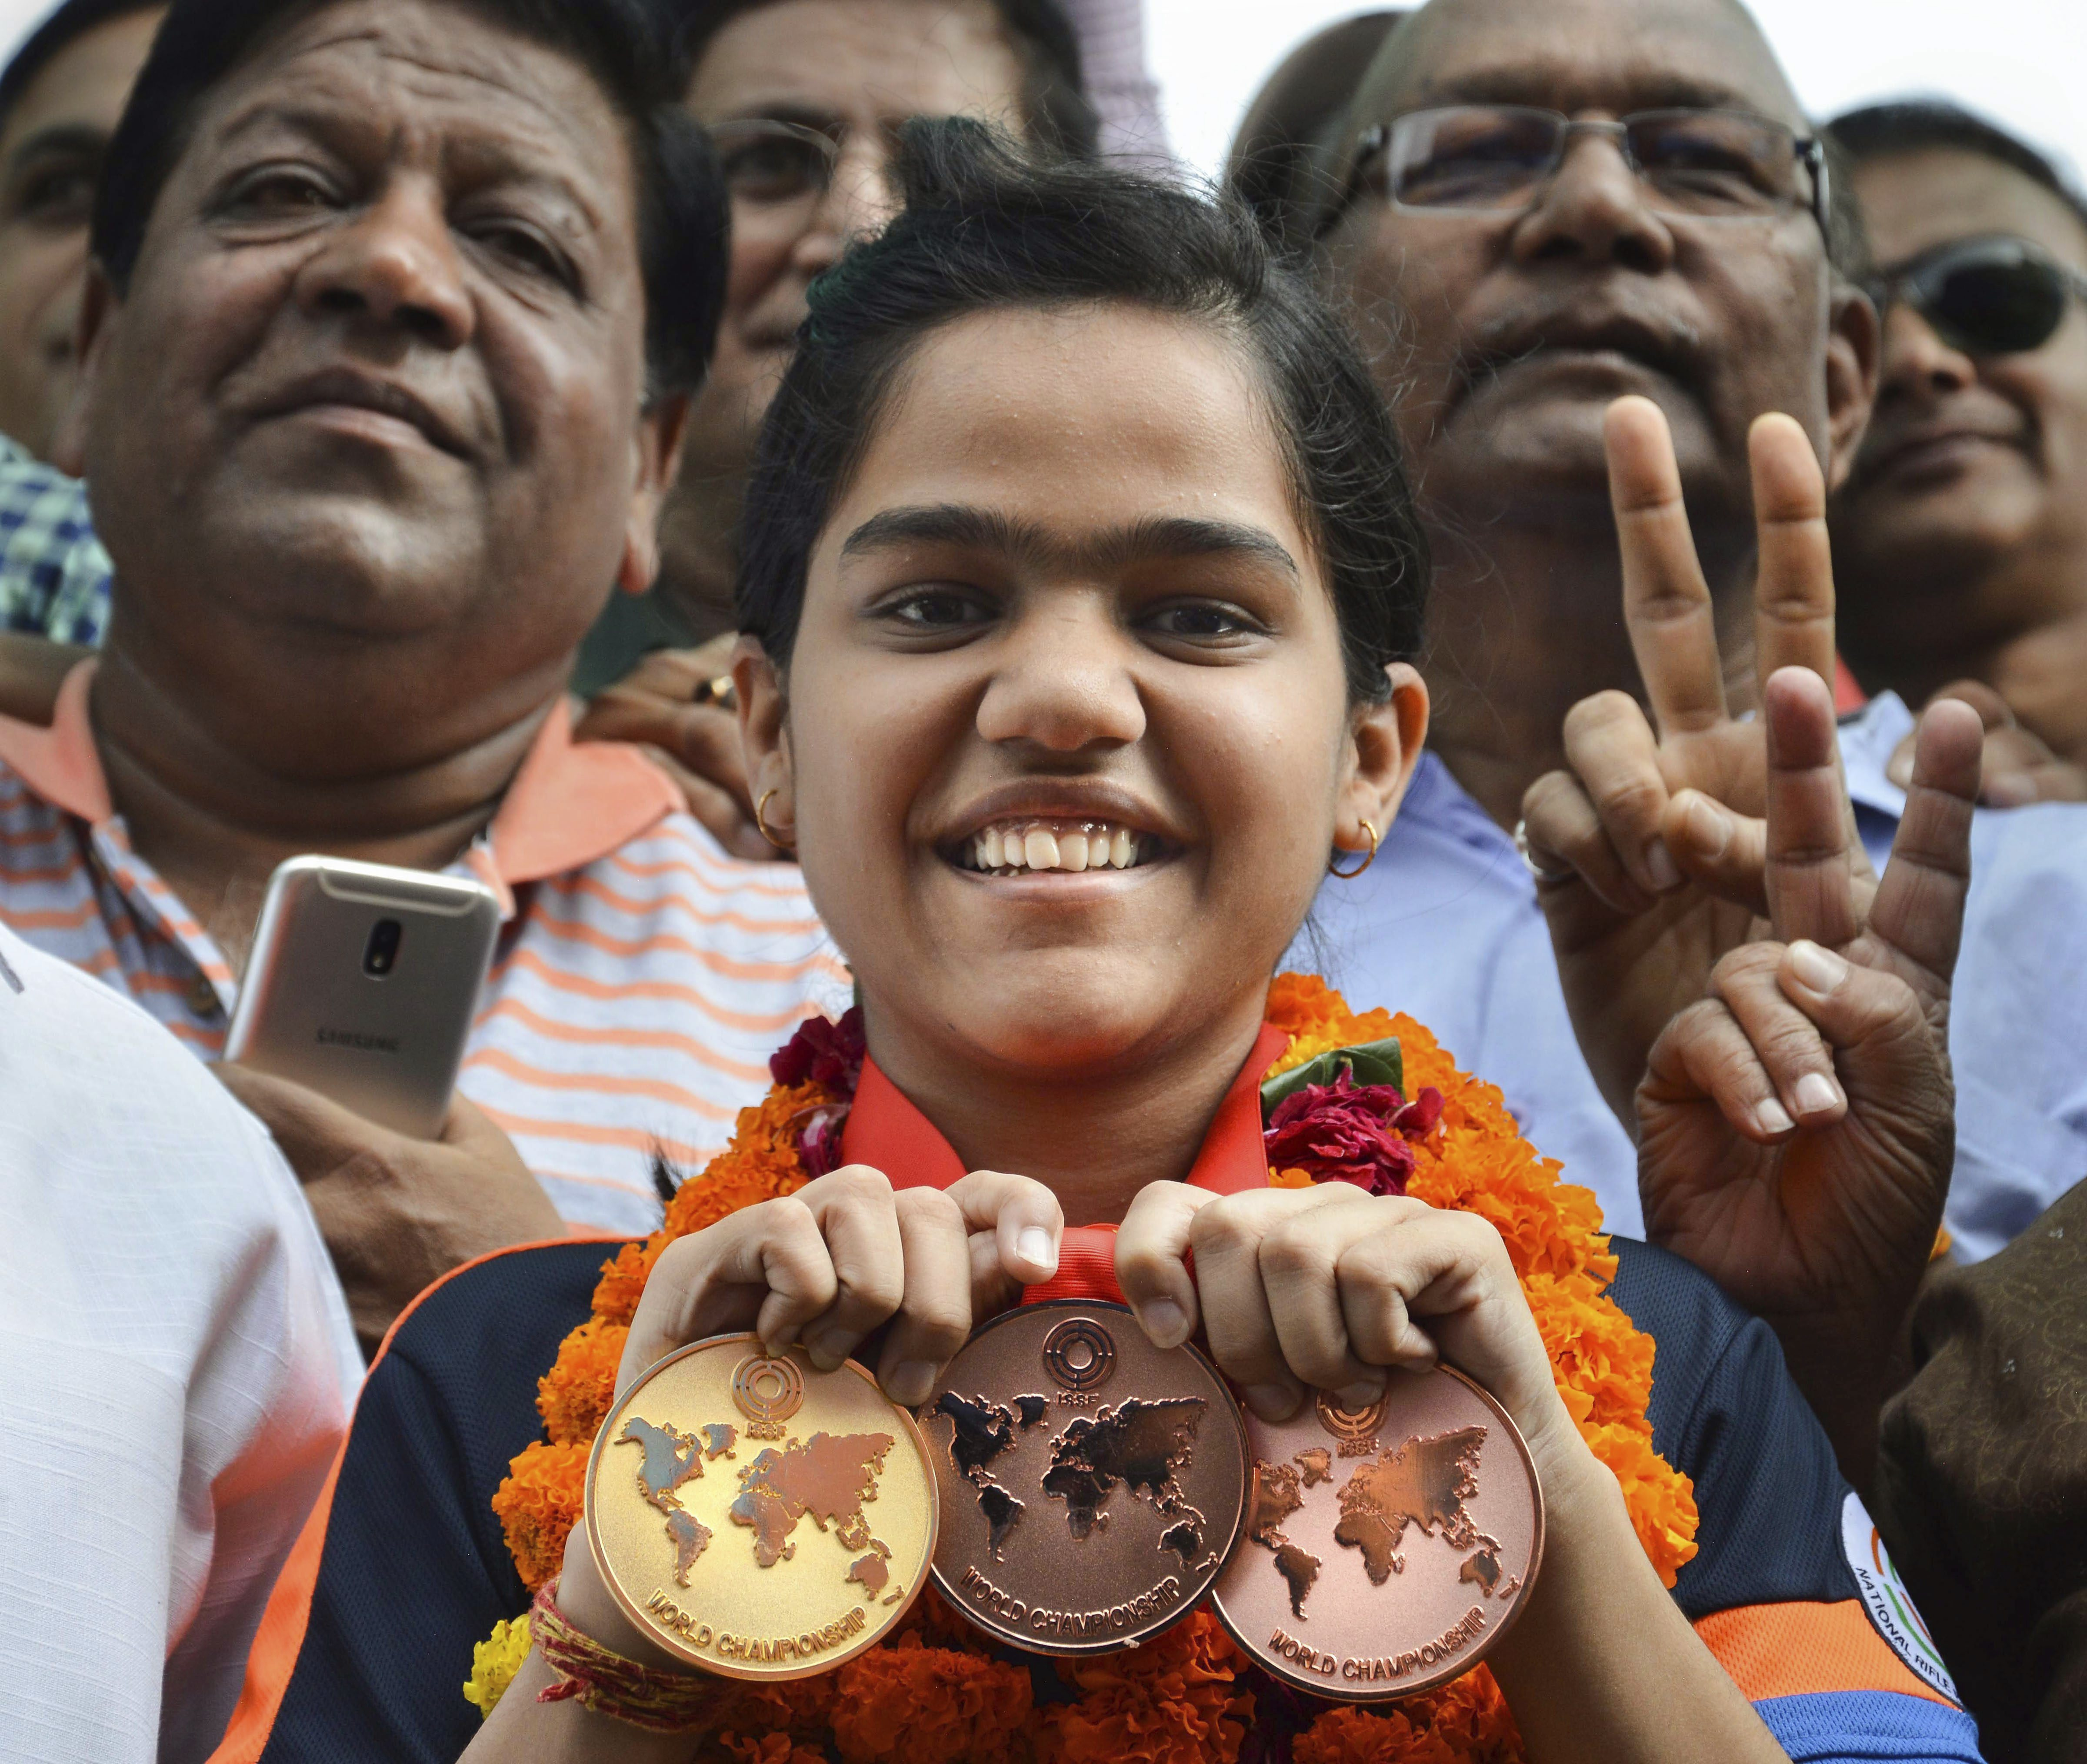 Gold medalist in shooting, Shreya Agarwal poses with her medals on her arrival at a railway station, in Jabalpur - PTI